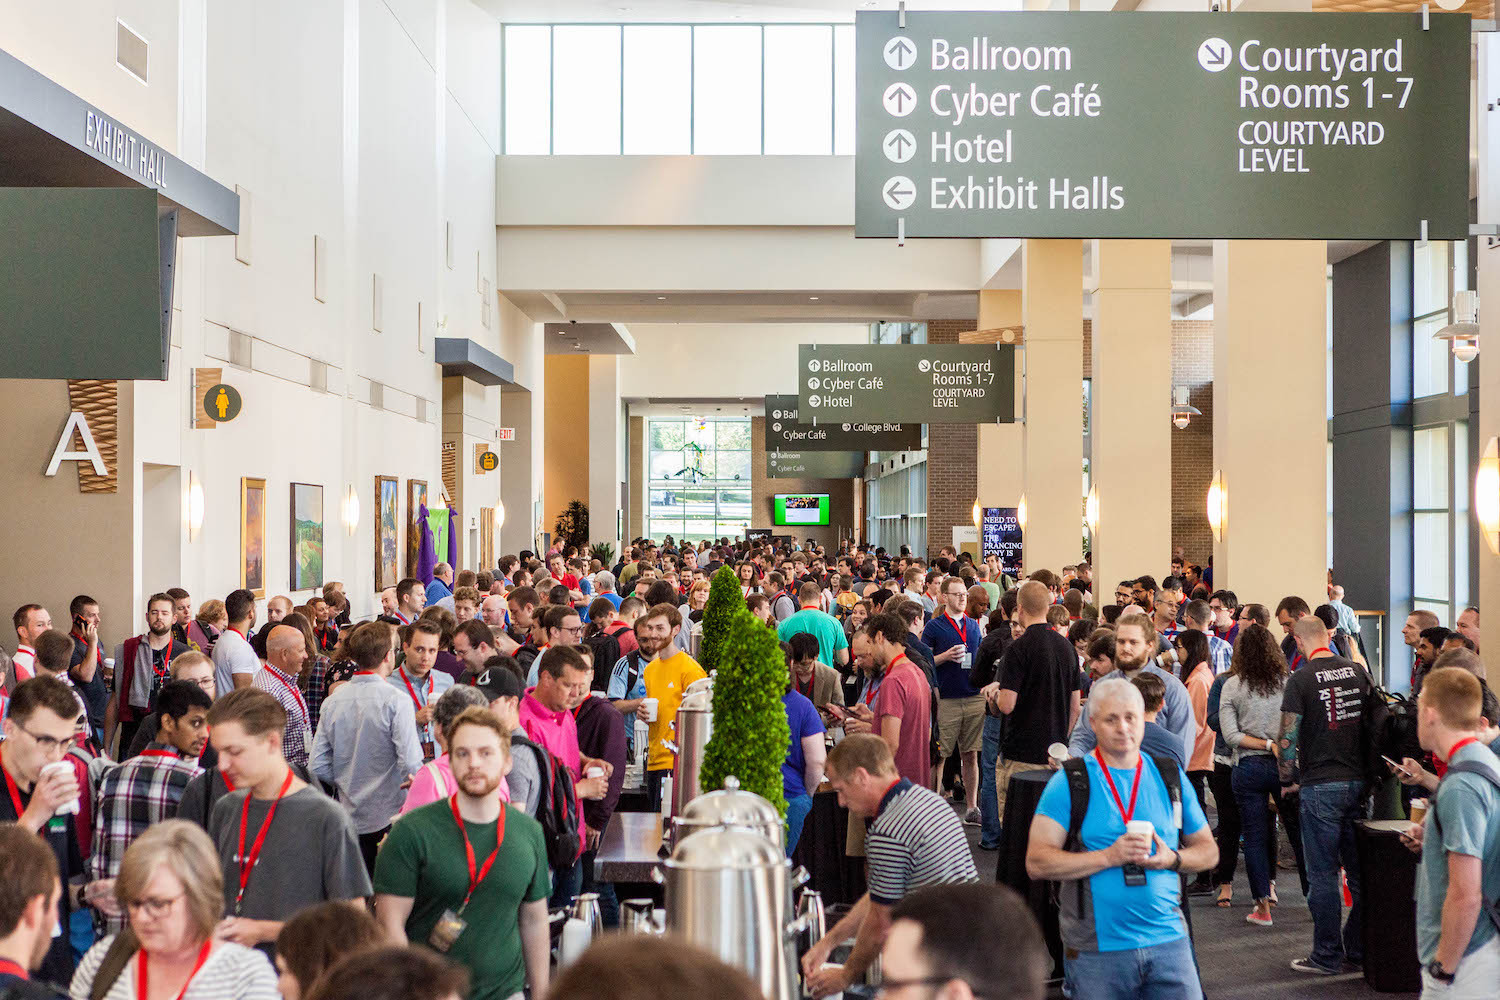 Four thousand of the brightest in technology come together for Cerner's annual DevCon event hosted at the Overland Park Convention Center.